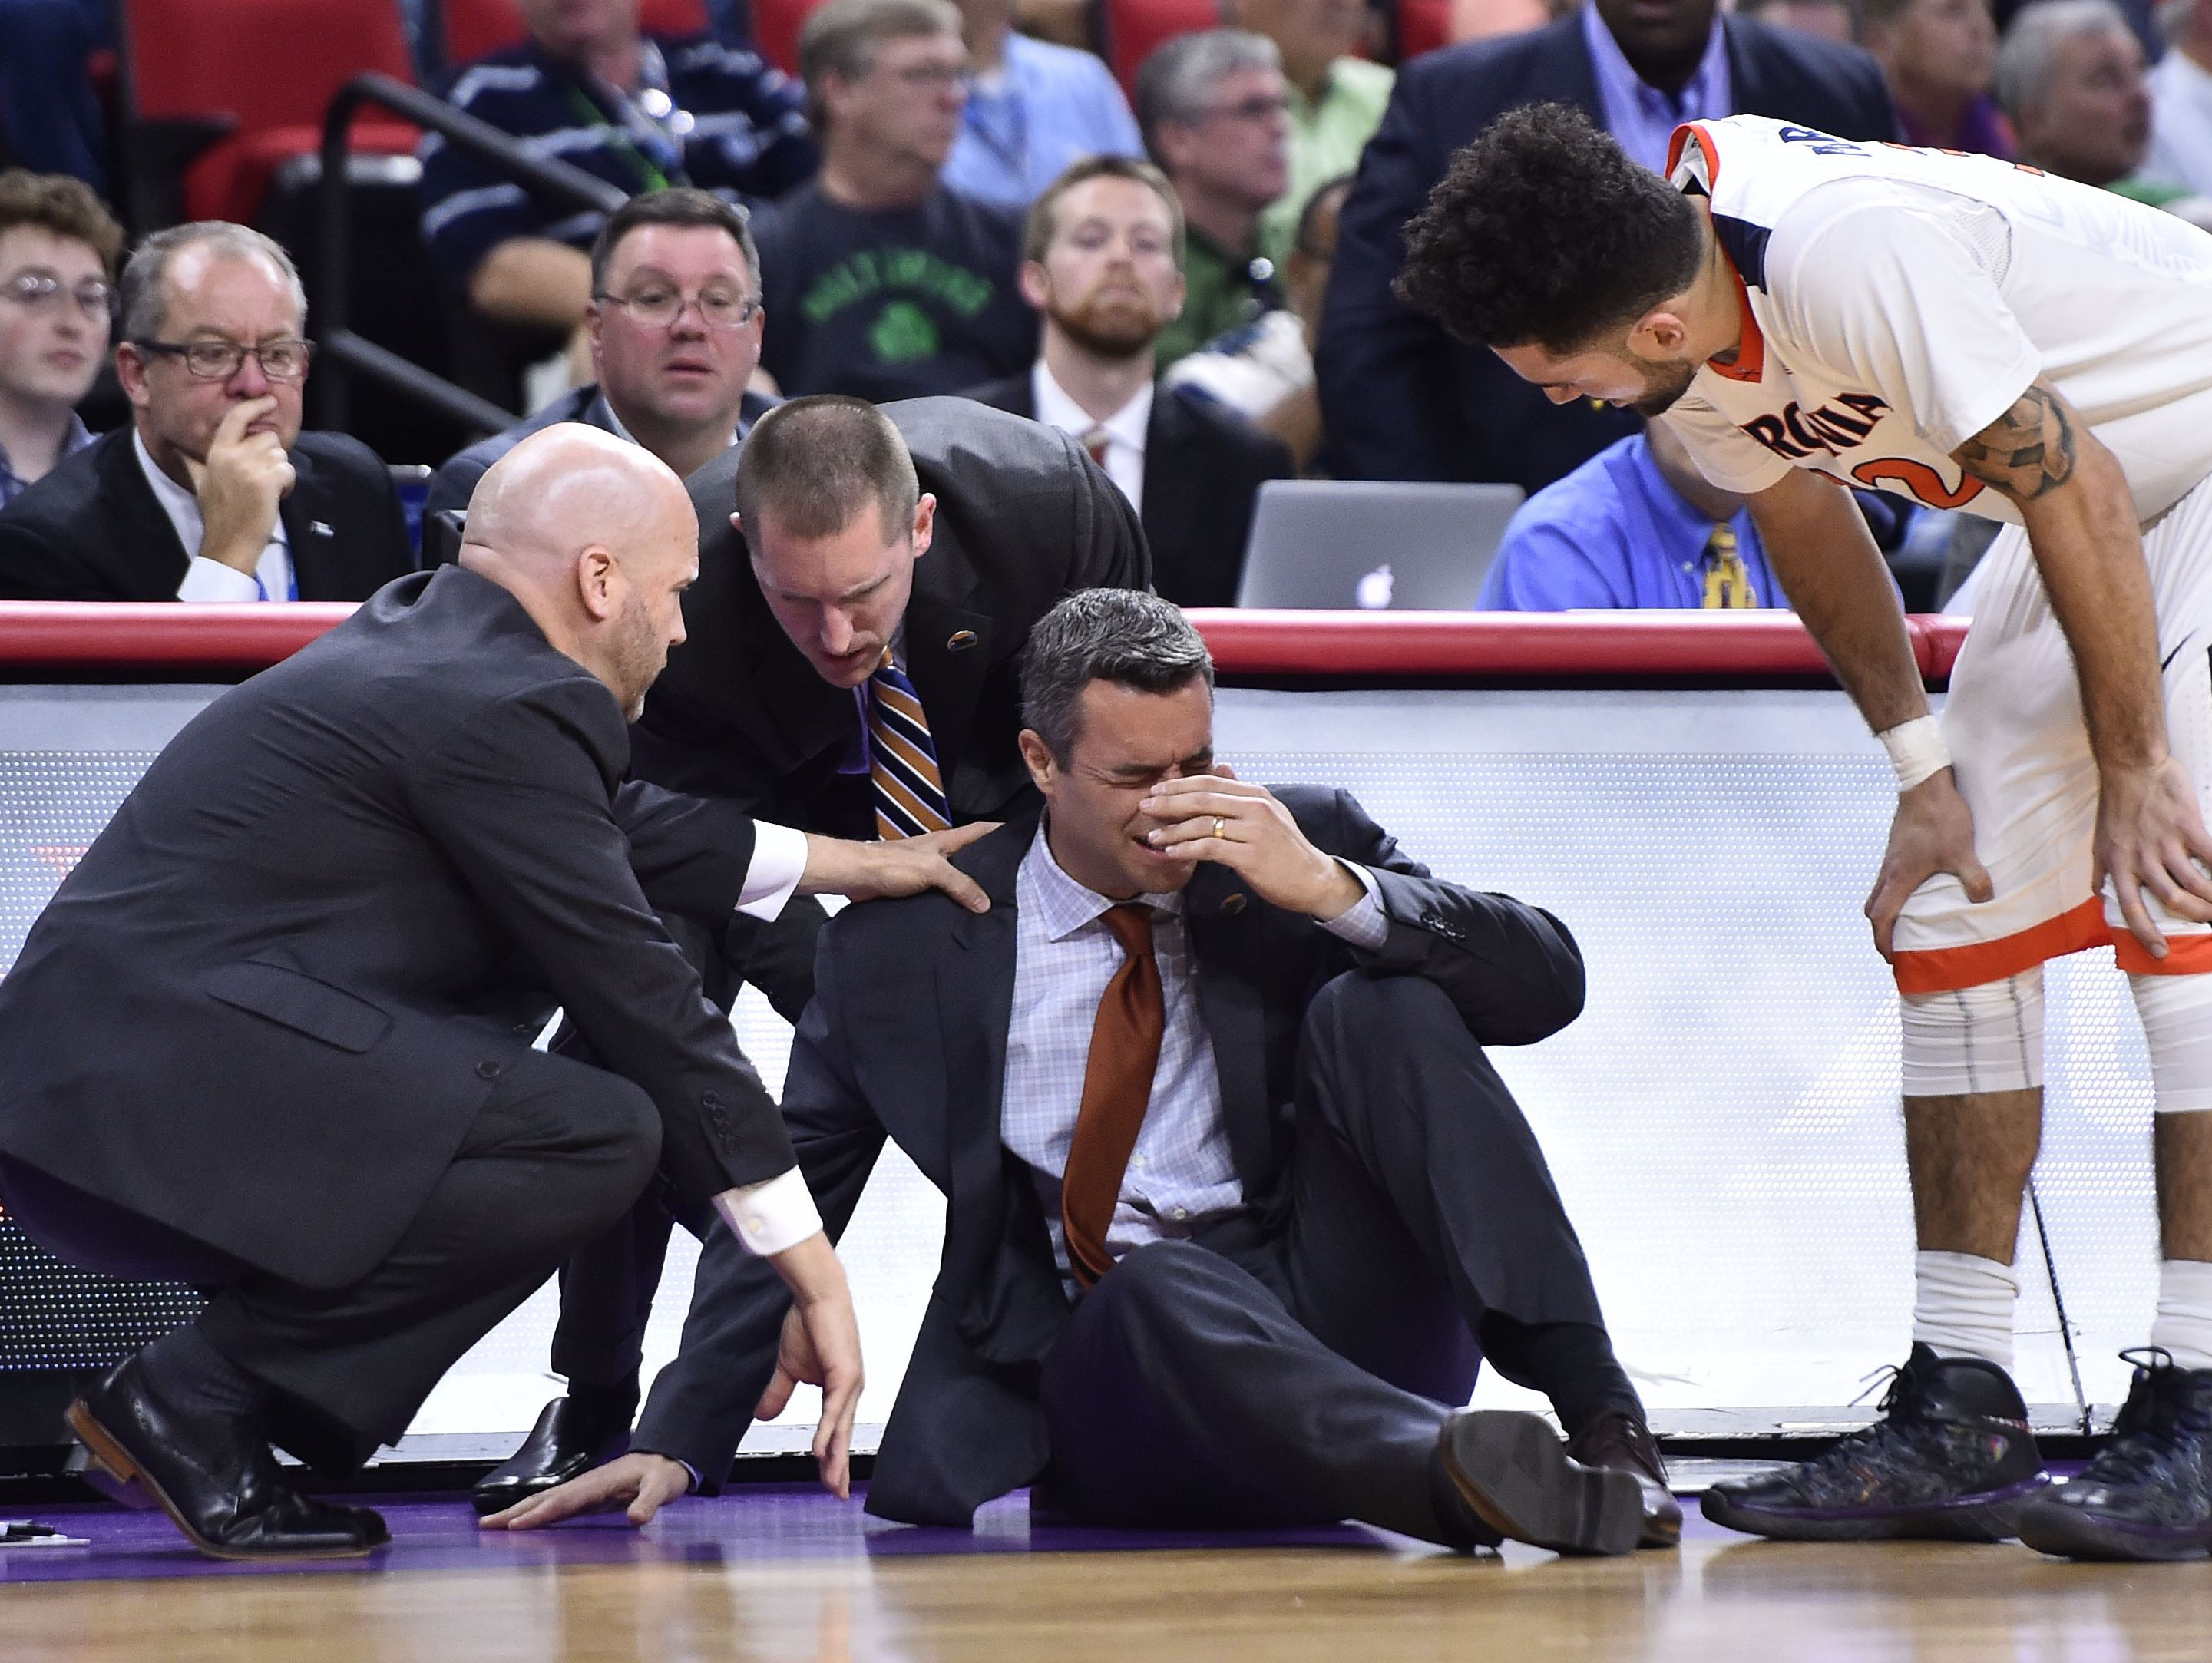 Virginia Cavaliers assistant athletic director Ronnie Wideman (C) and assistant coach Brad Soderberg (L) tends to head coach Tony Bennett, who fainted in front of guard London Perrantes (32) during the first half at PNC Arena.